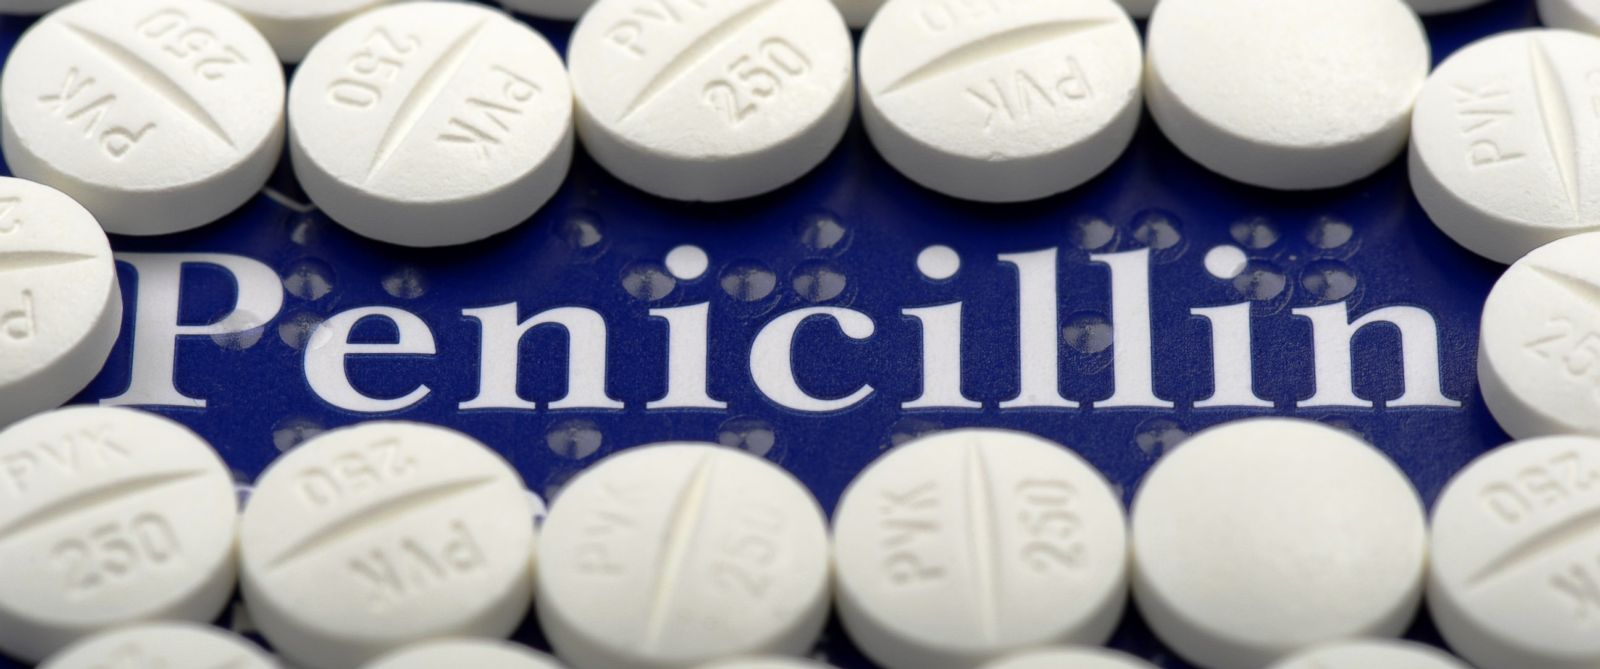 PHOTO: Two new studies find many people mistakenly think they're allergic to penicillin.